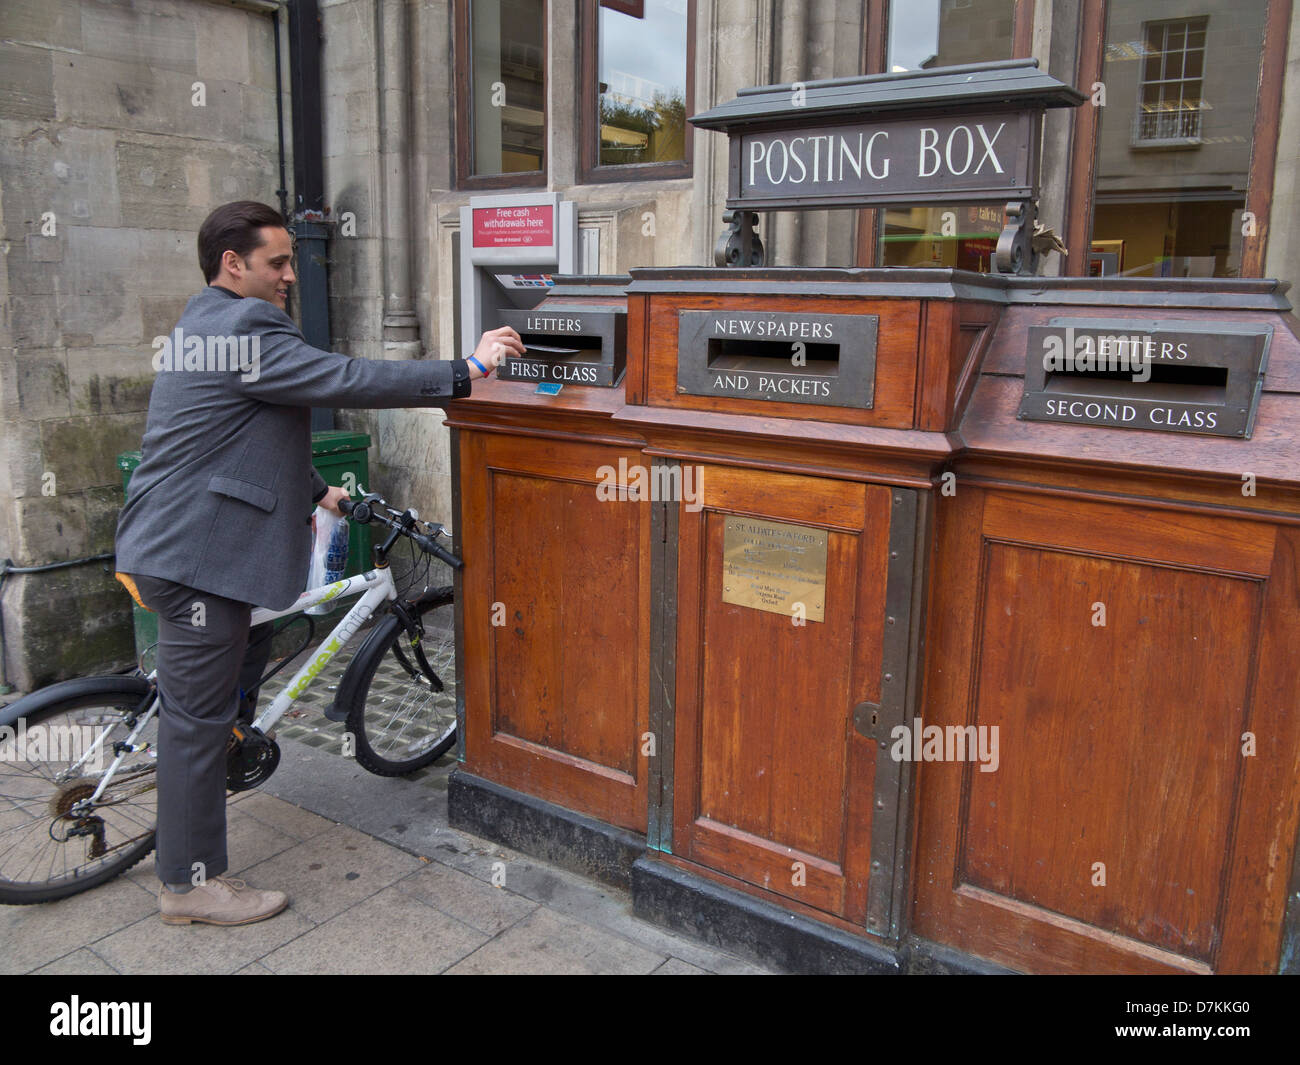 Man posting letter in an old fashioned Post Office in Oxford, England, UK - Stock Image